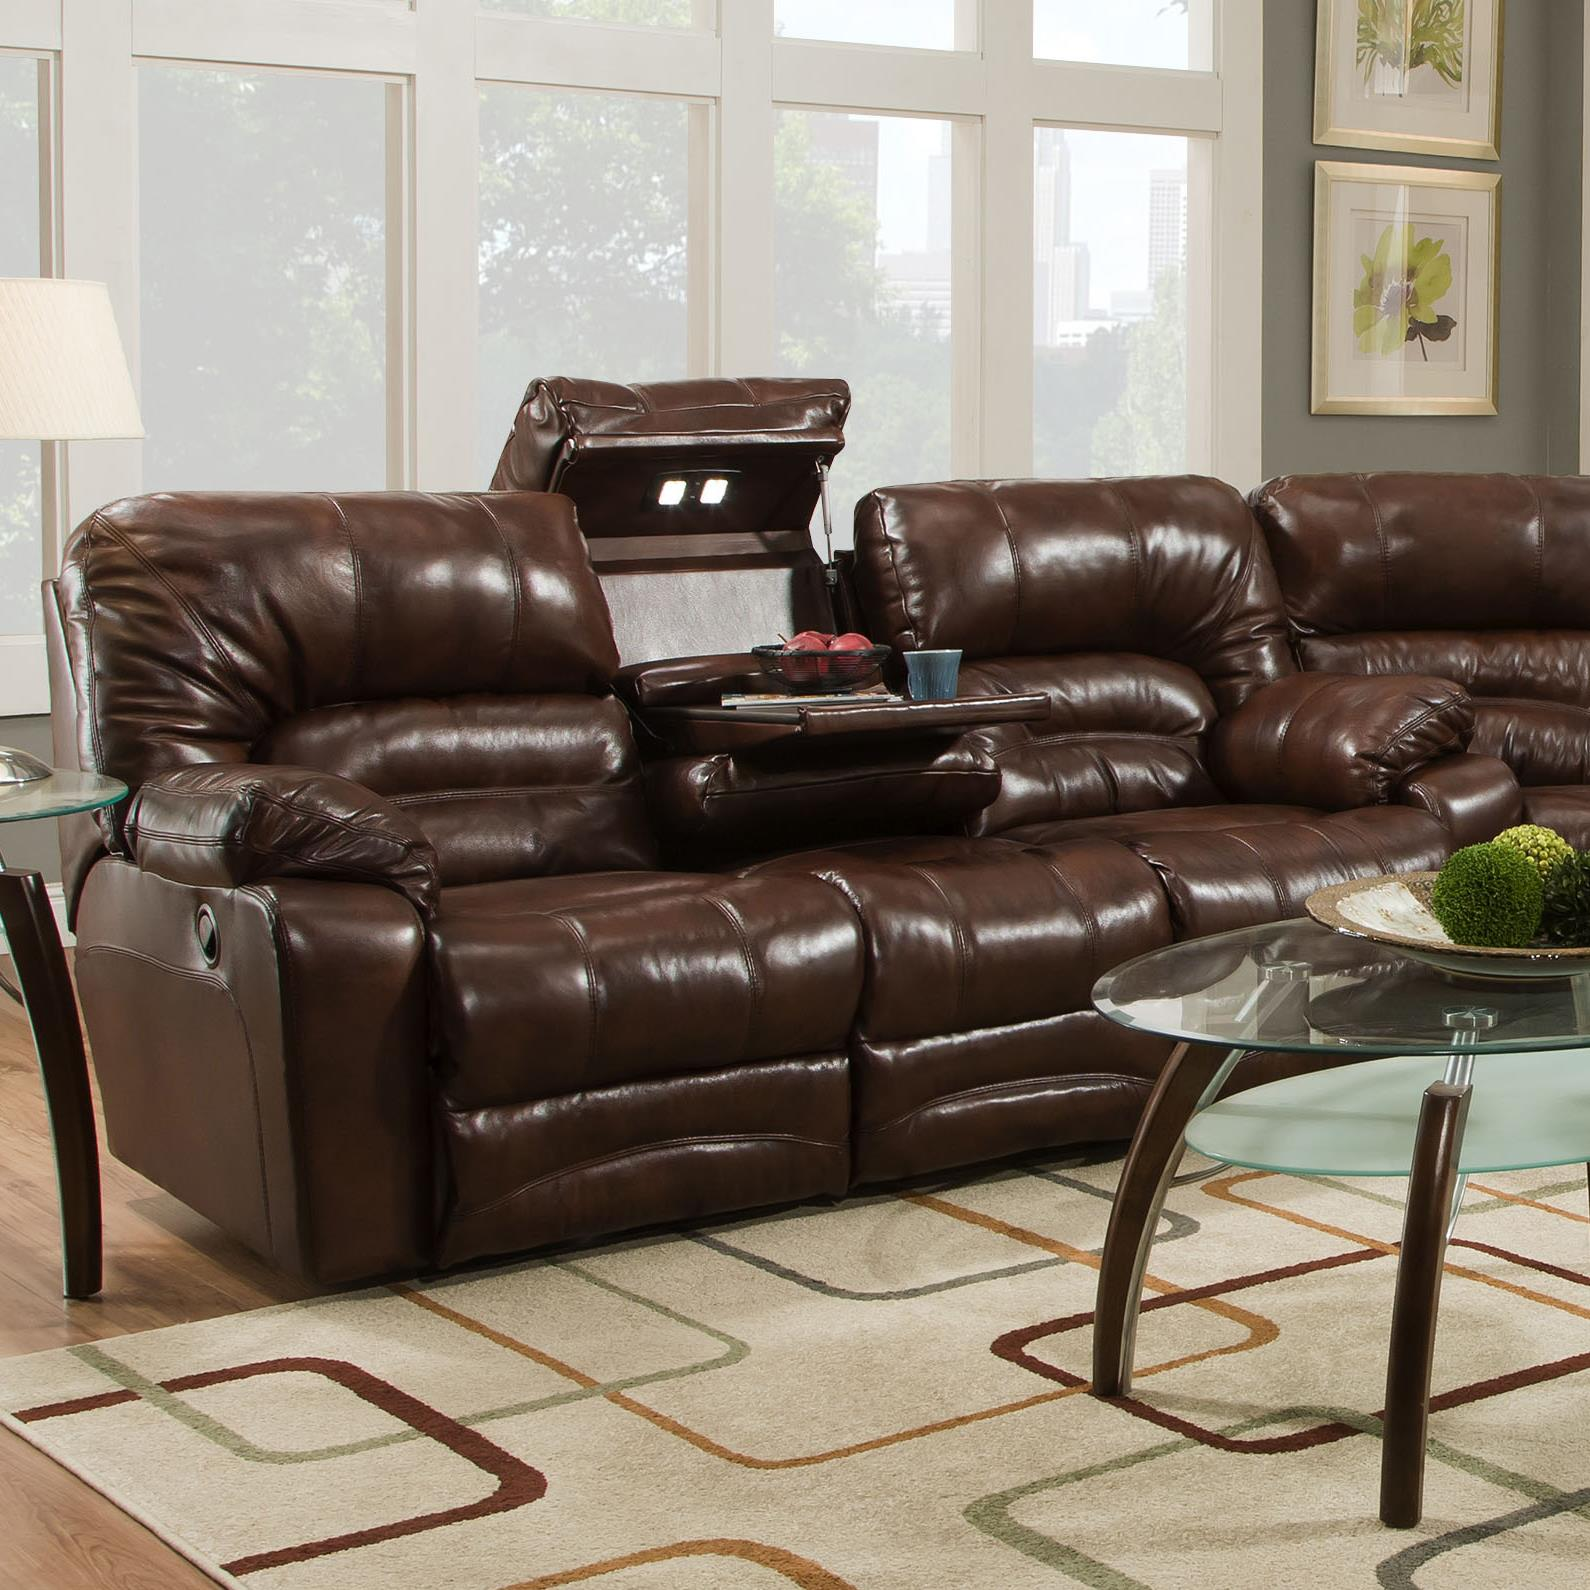 Legacy Power Reclining Sofa with Table and Lights by Franklin at Lagniappe Home Store